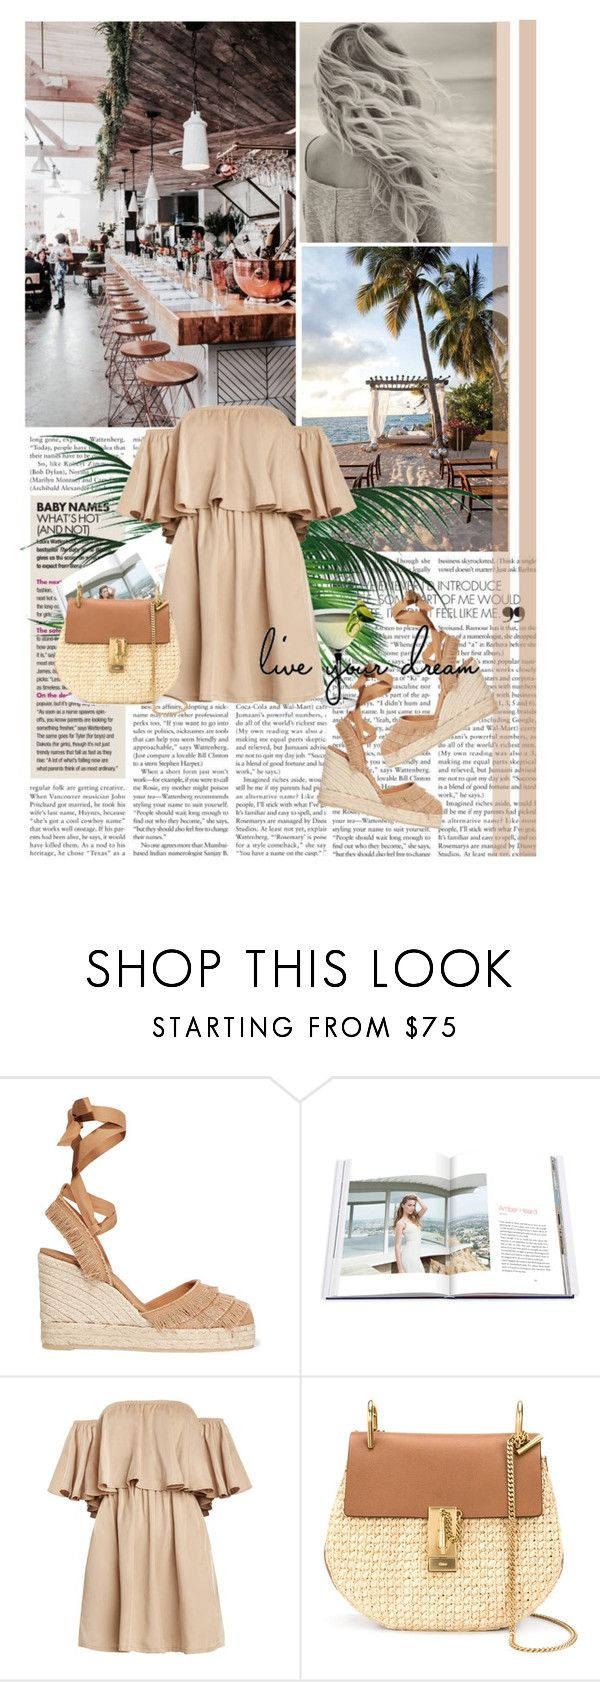 """""""Last days of summer"""" by gabriellabejenaru ❤ liked on Polyvore featuring Castañer, Assouline Publishing and Chloé"""